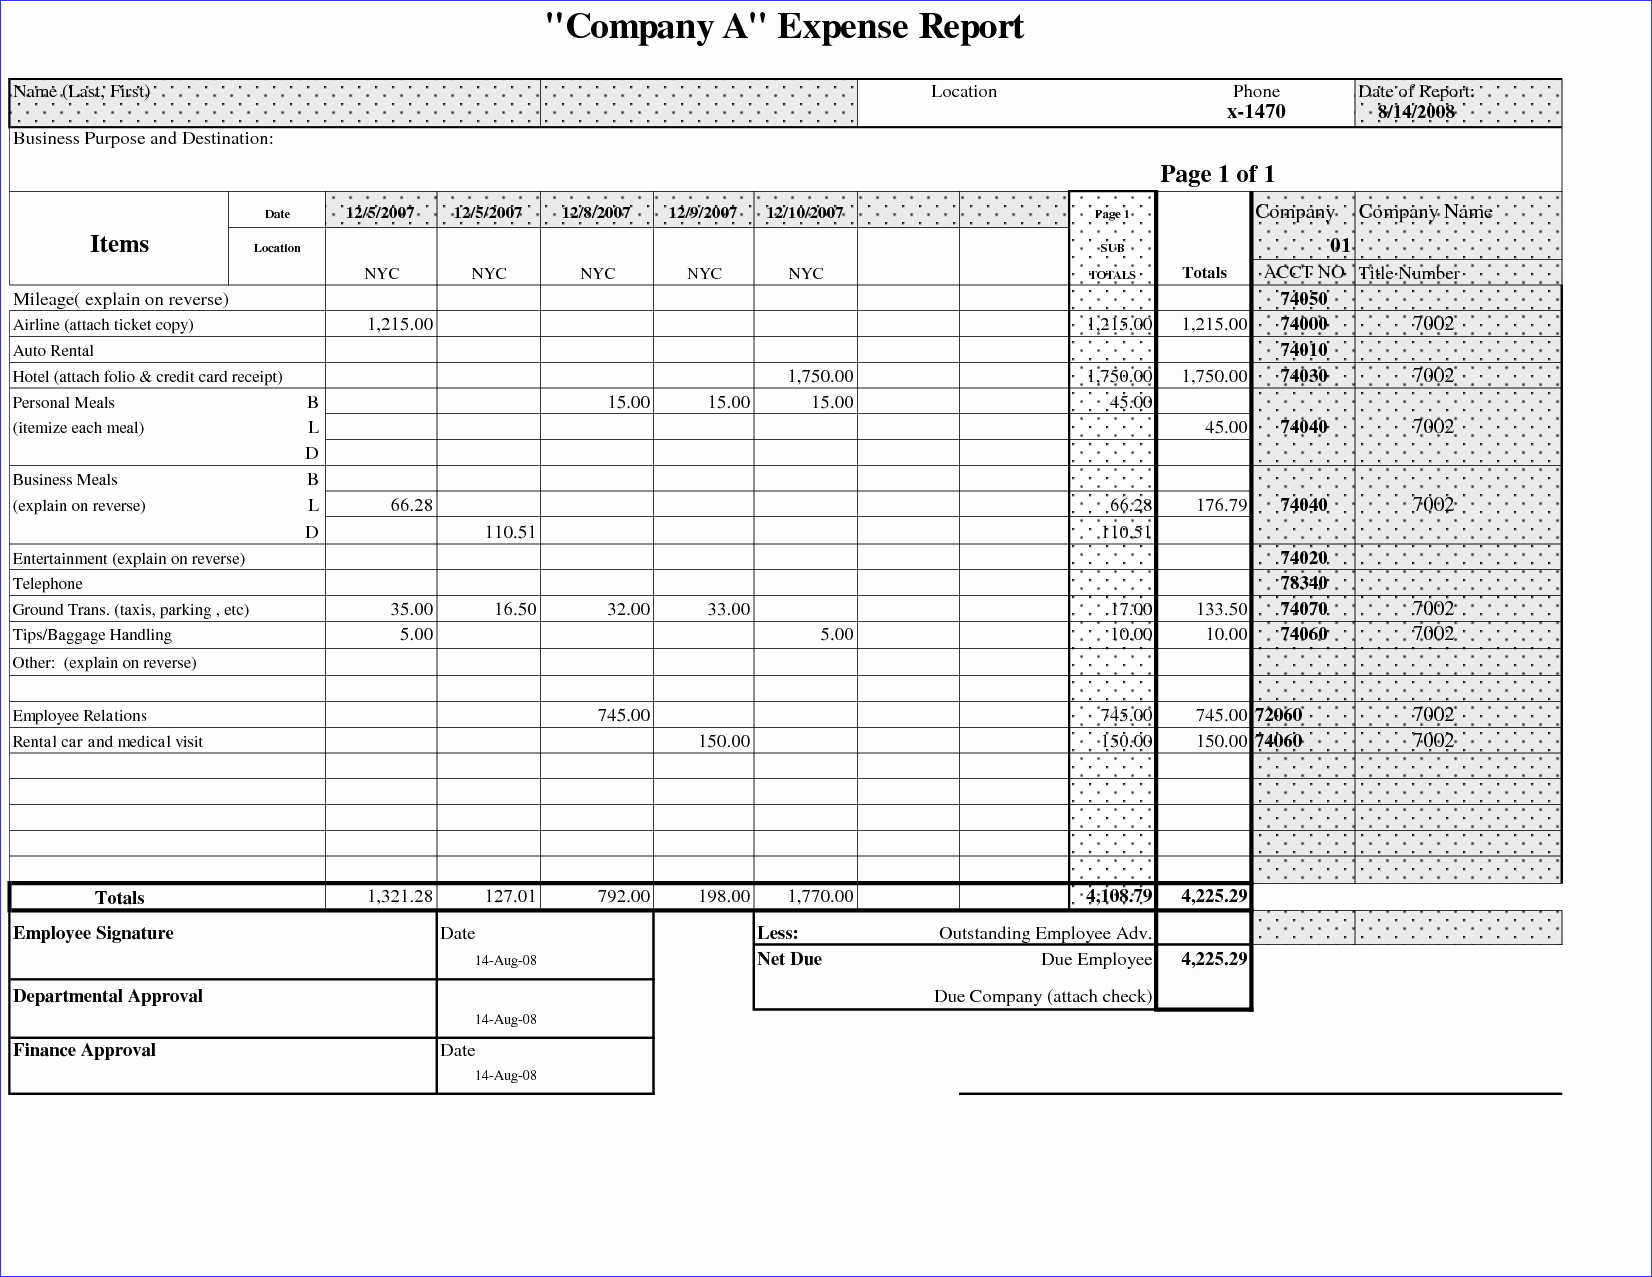 Basic Expense Report Template New Simple Expense Report form Portablegasgrillweber